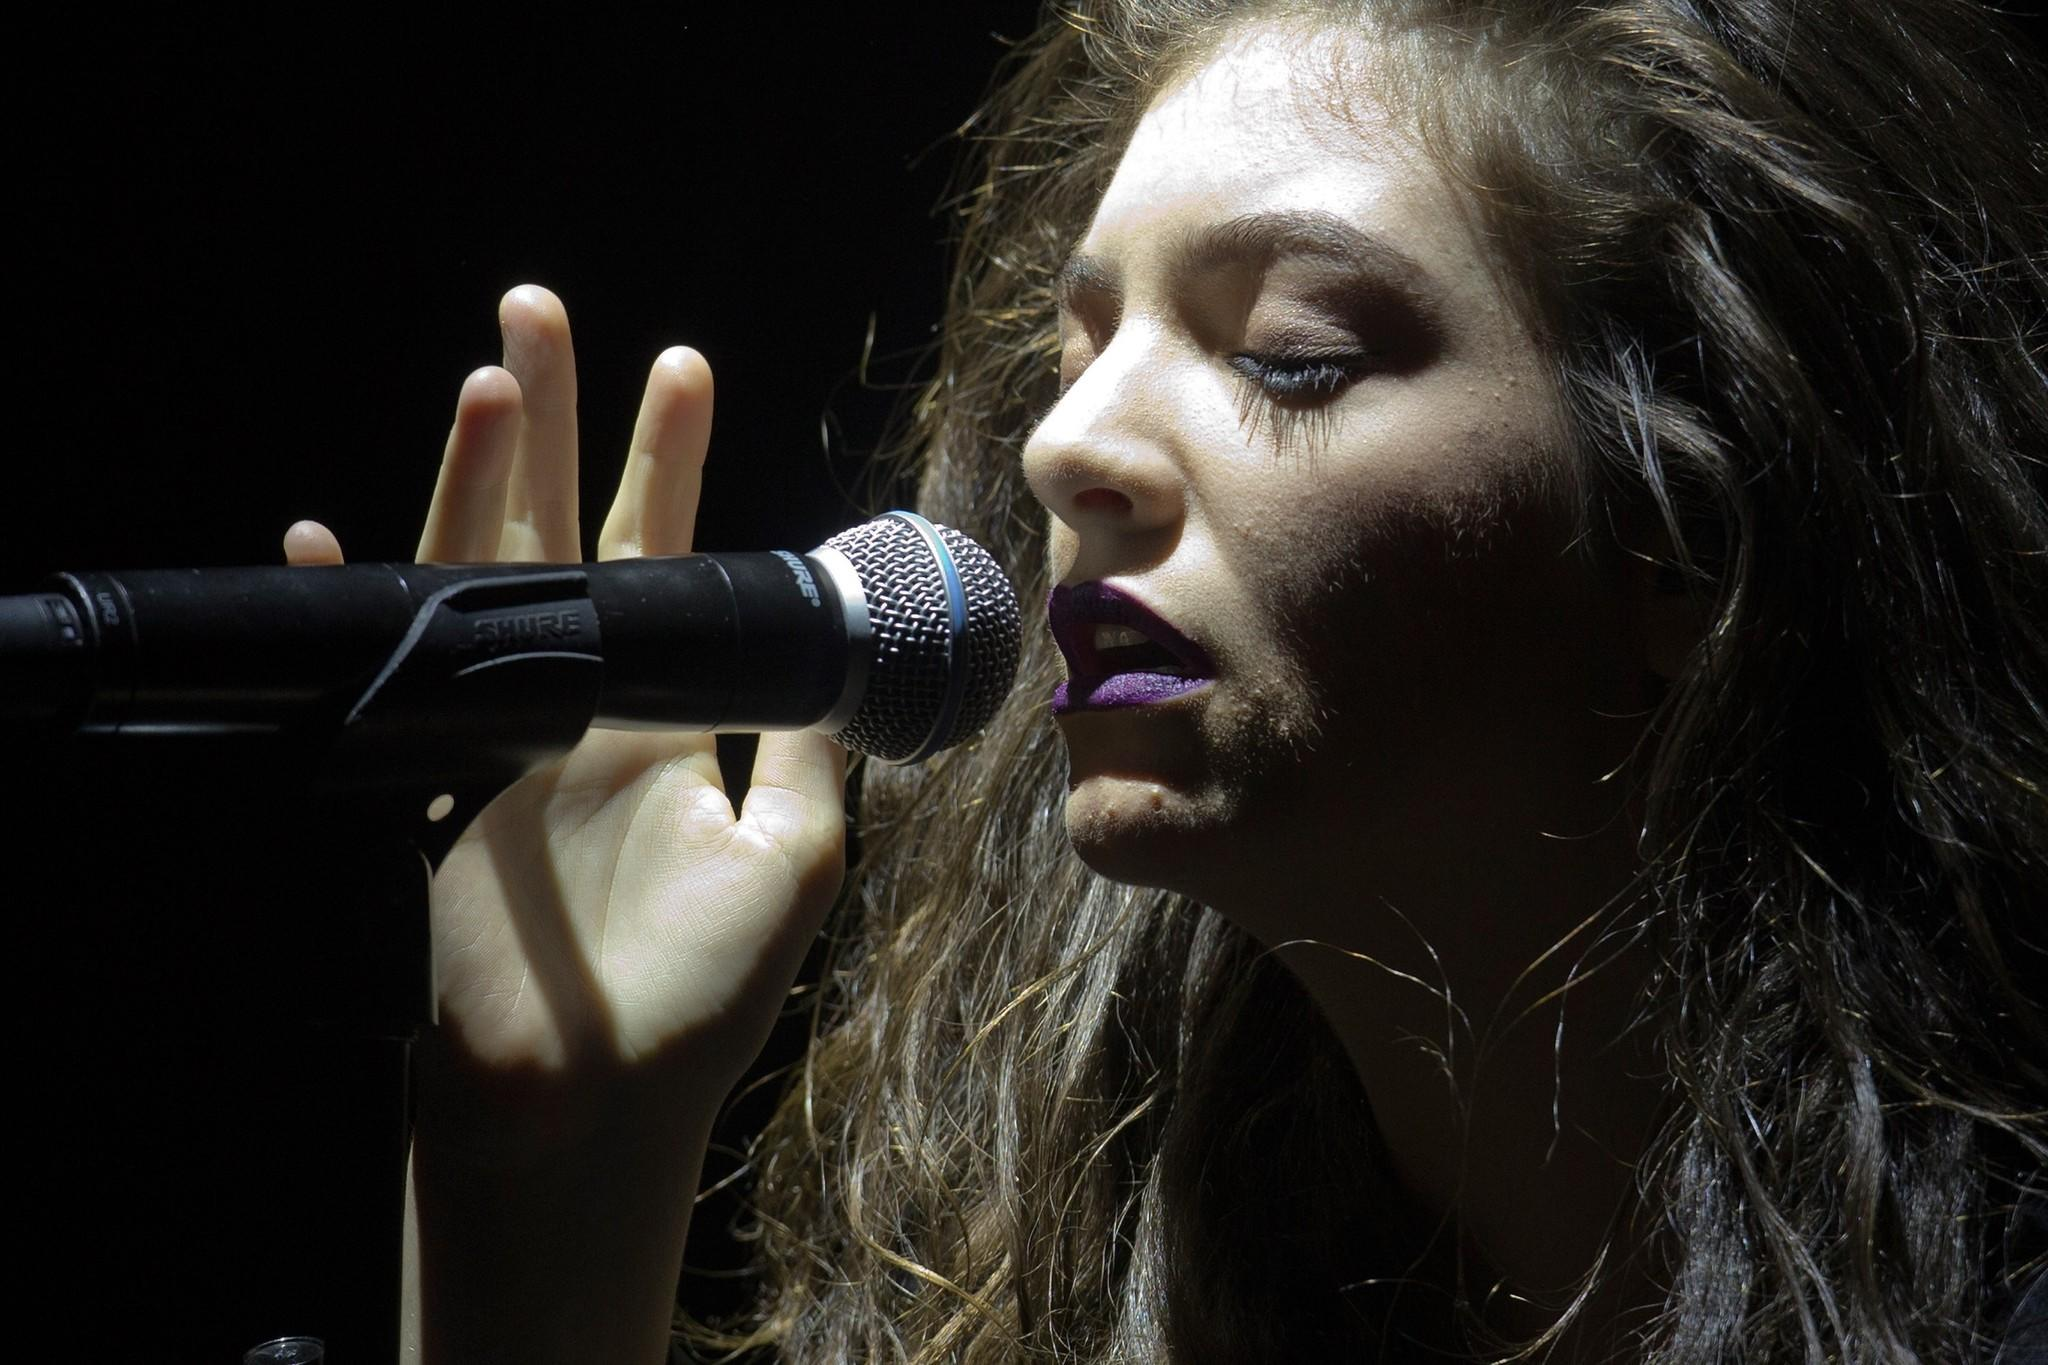 Singer-songwriter Lorde performs at the Roseland Ballroom in New York.